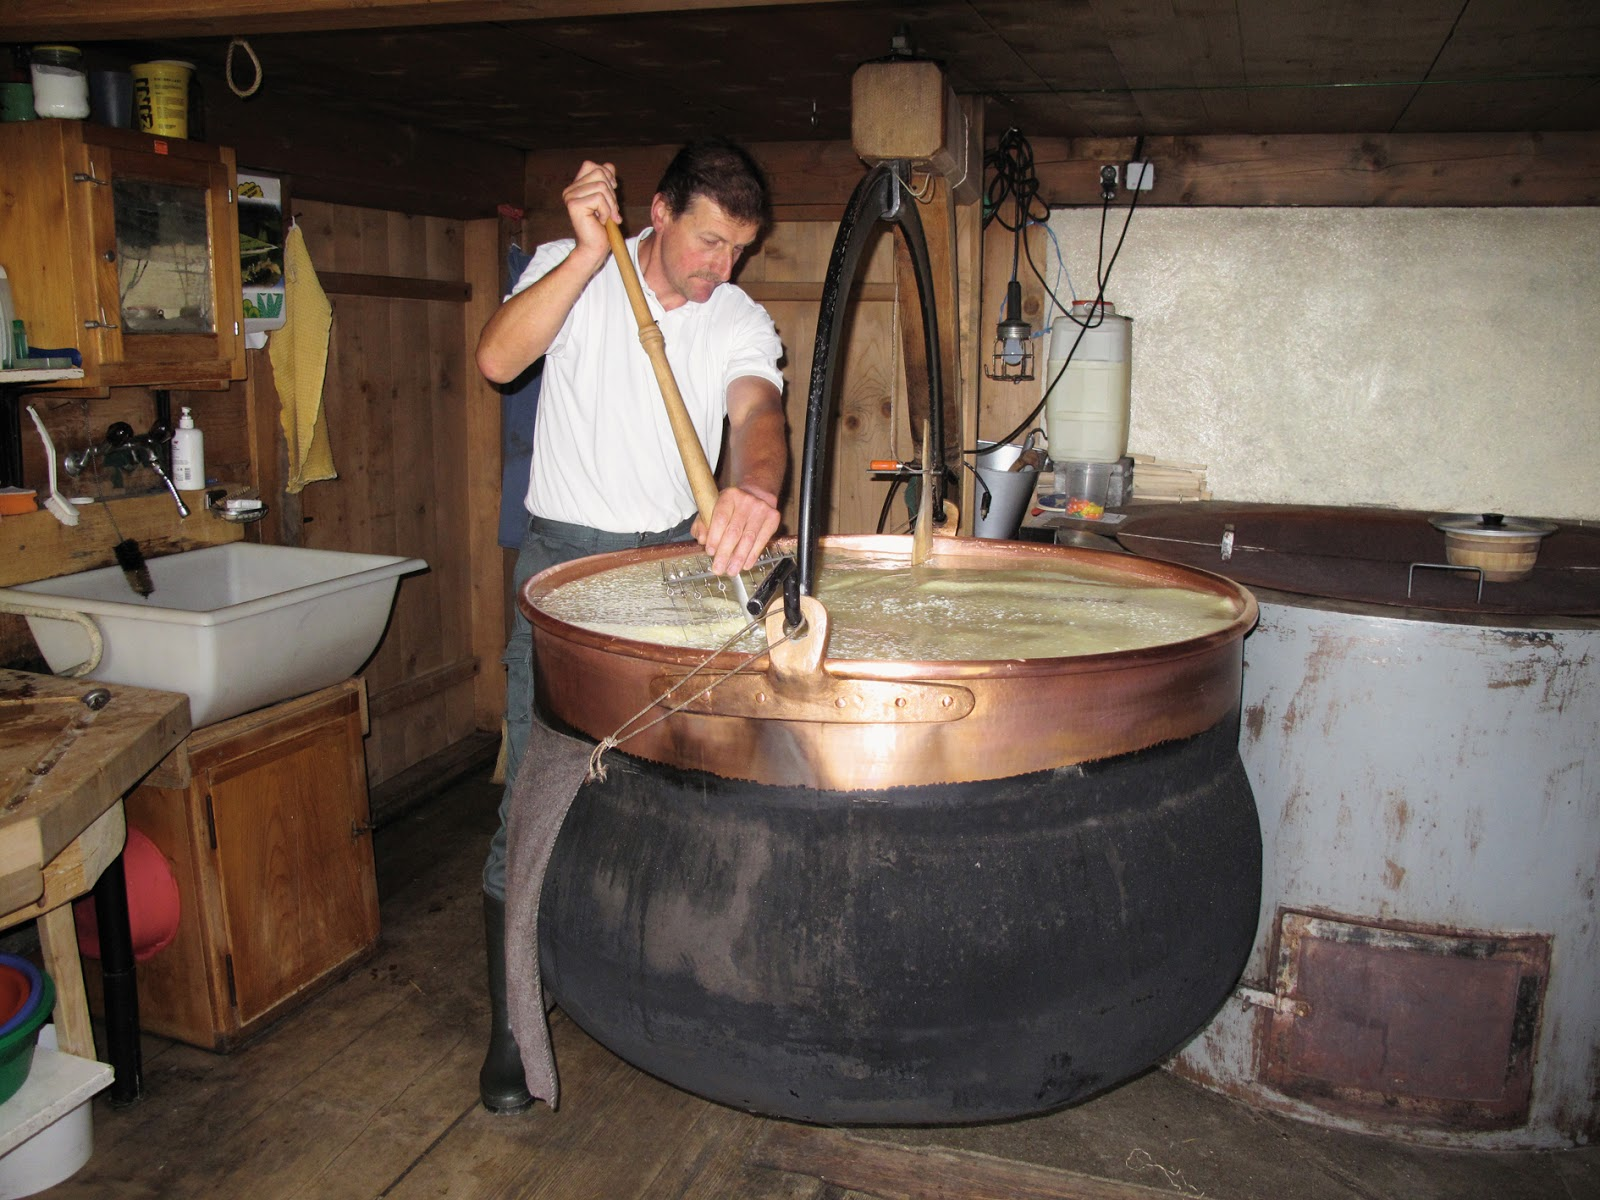 Cheese making in Gstaad. Photo: Gstaad Saanenland Tourismus.